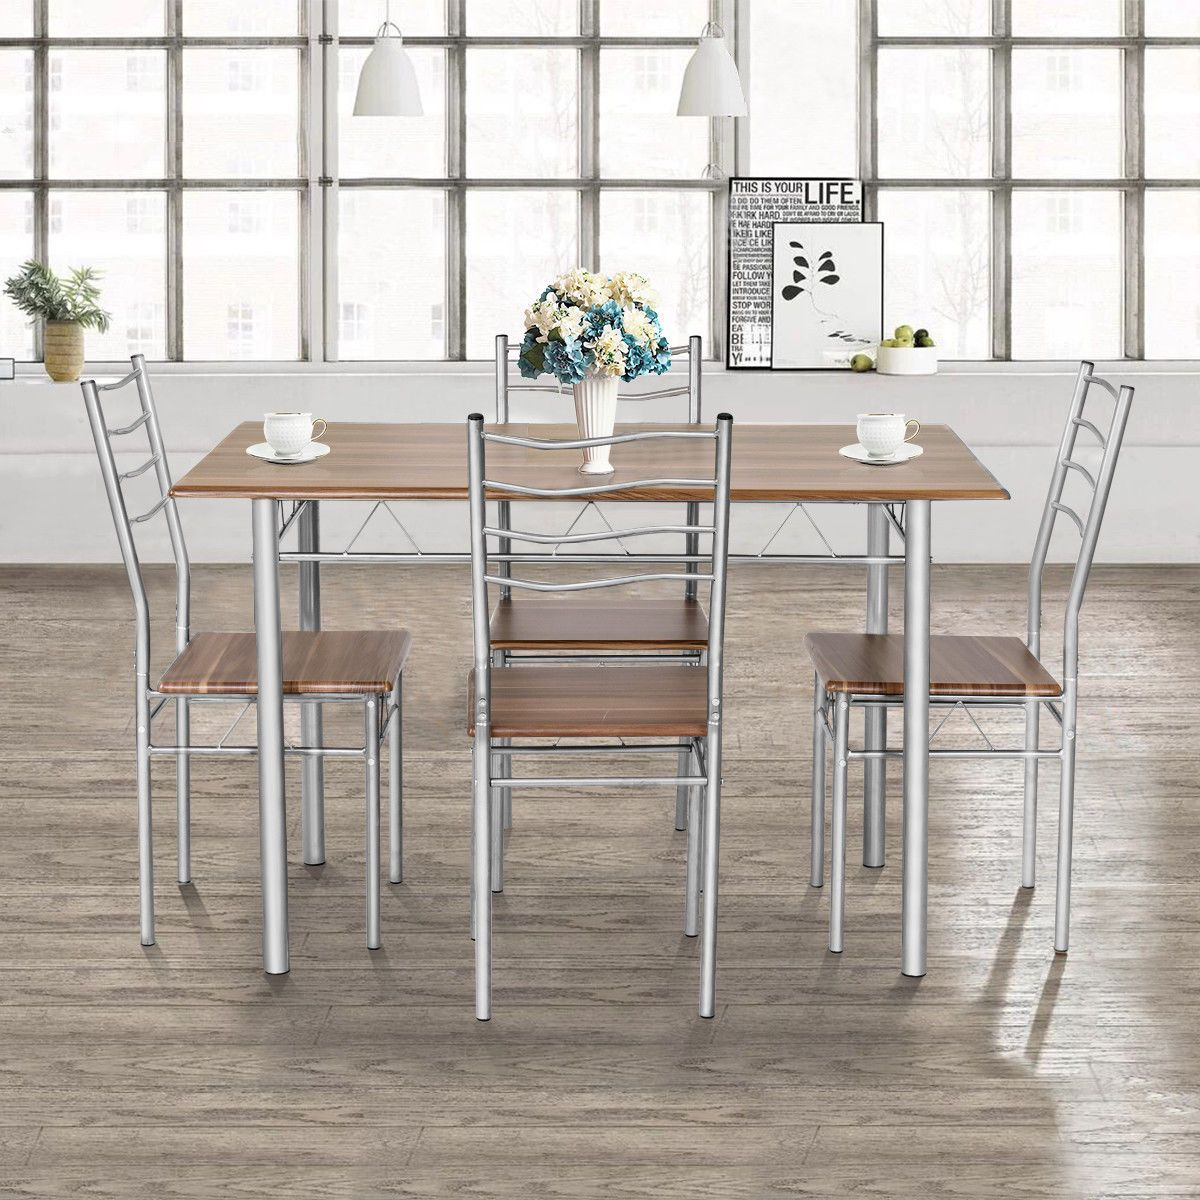 Home In 2020 Metal Dining Chairs Dining Table In Kitchen